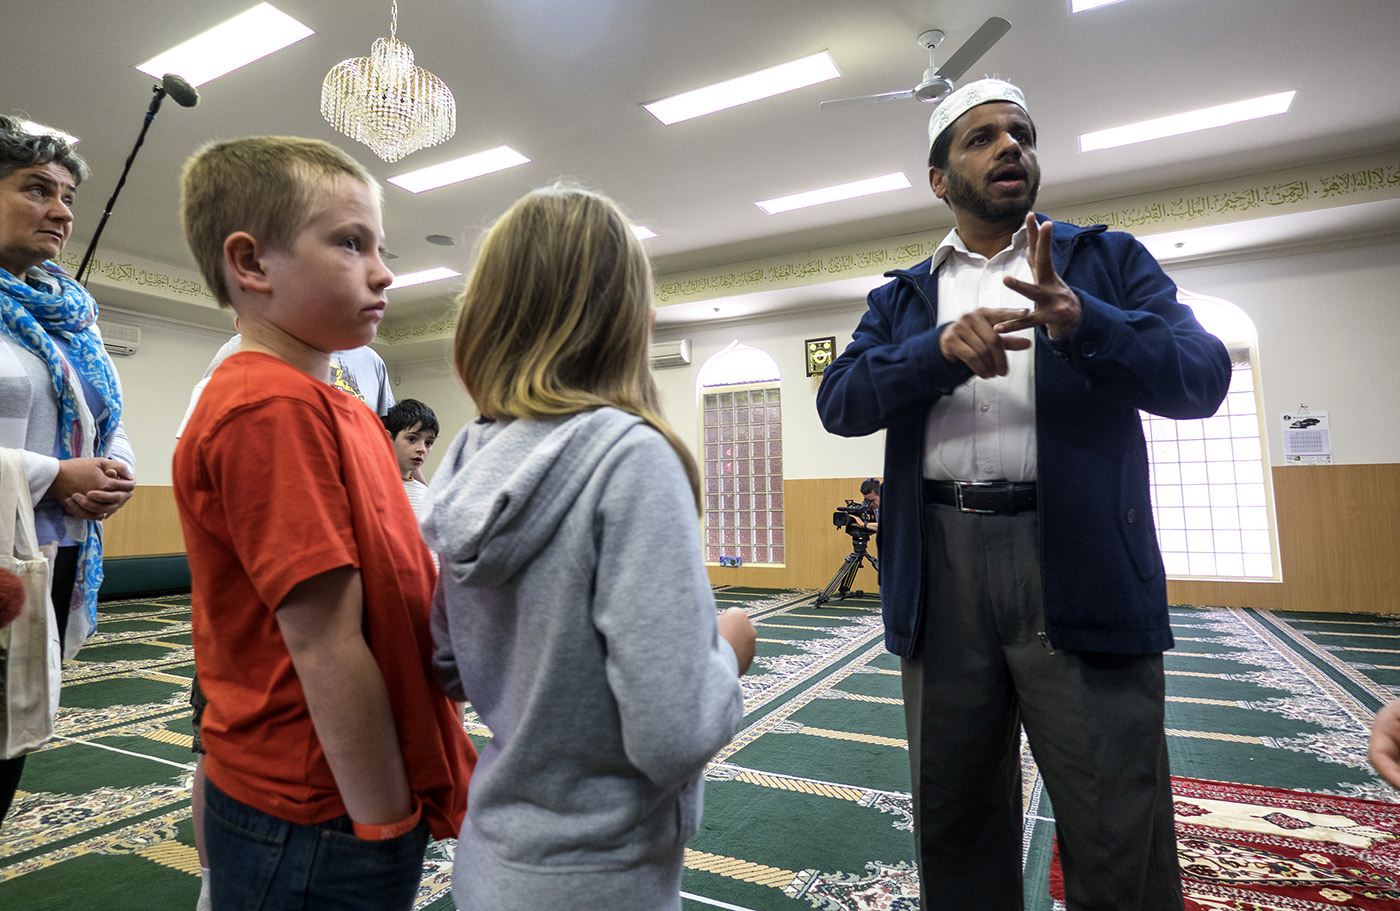 An open day at a mosque in Hoppers Crossing, Melbourne, where Fawad first lived when he came to Australia. Fawad has a role at Cricket Victoria where he is involved in shepherding minorities to the game